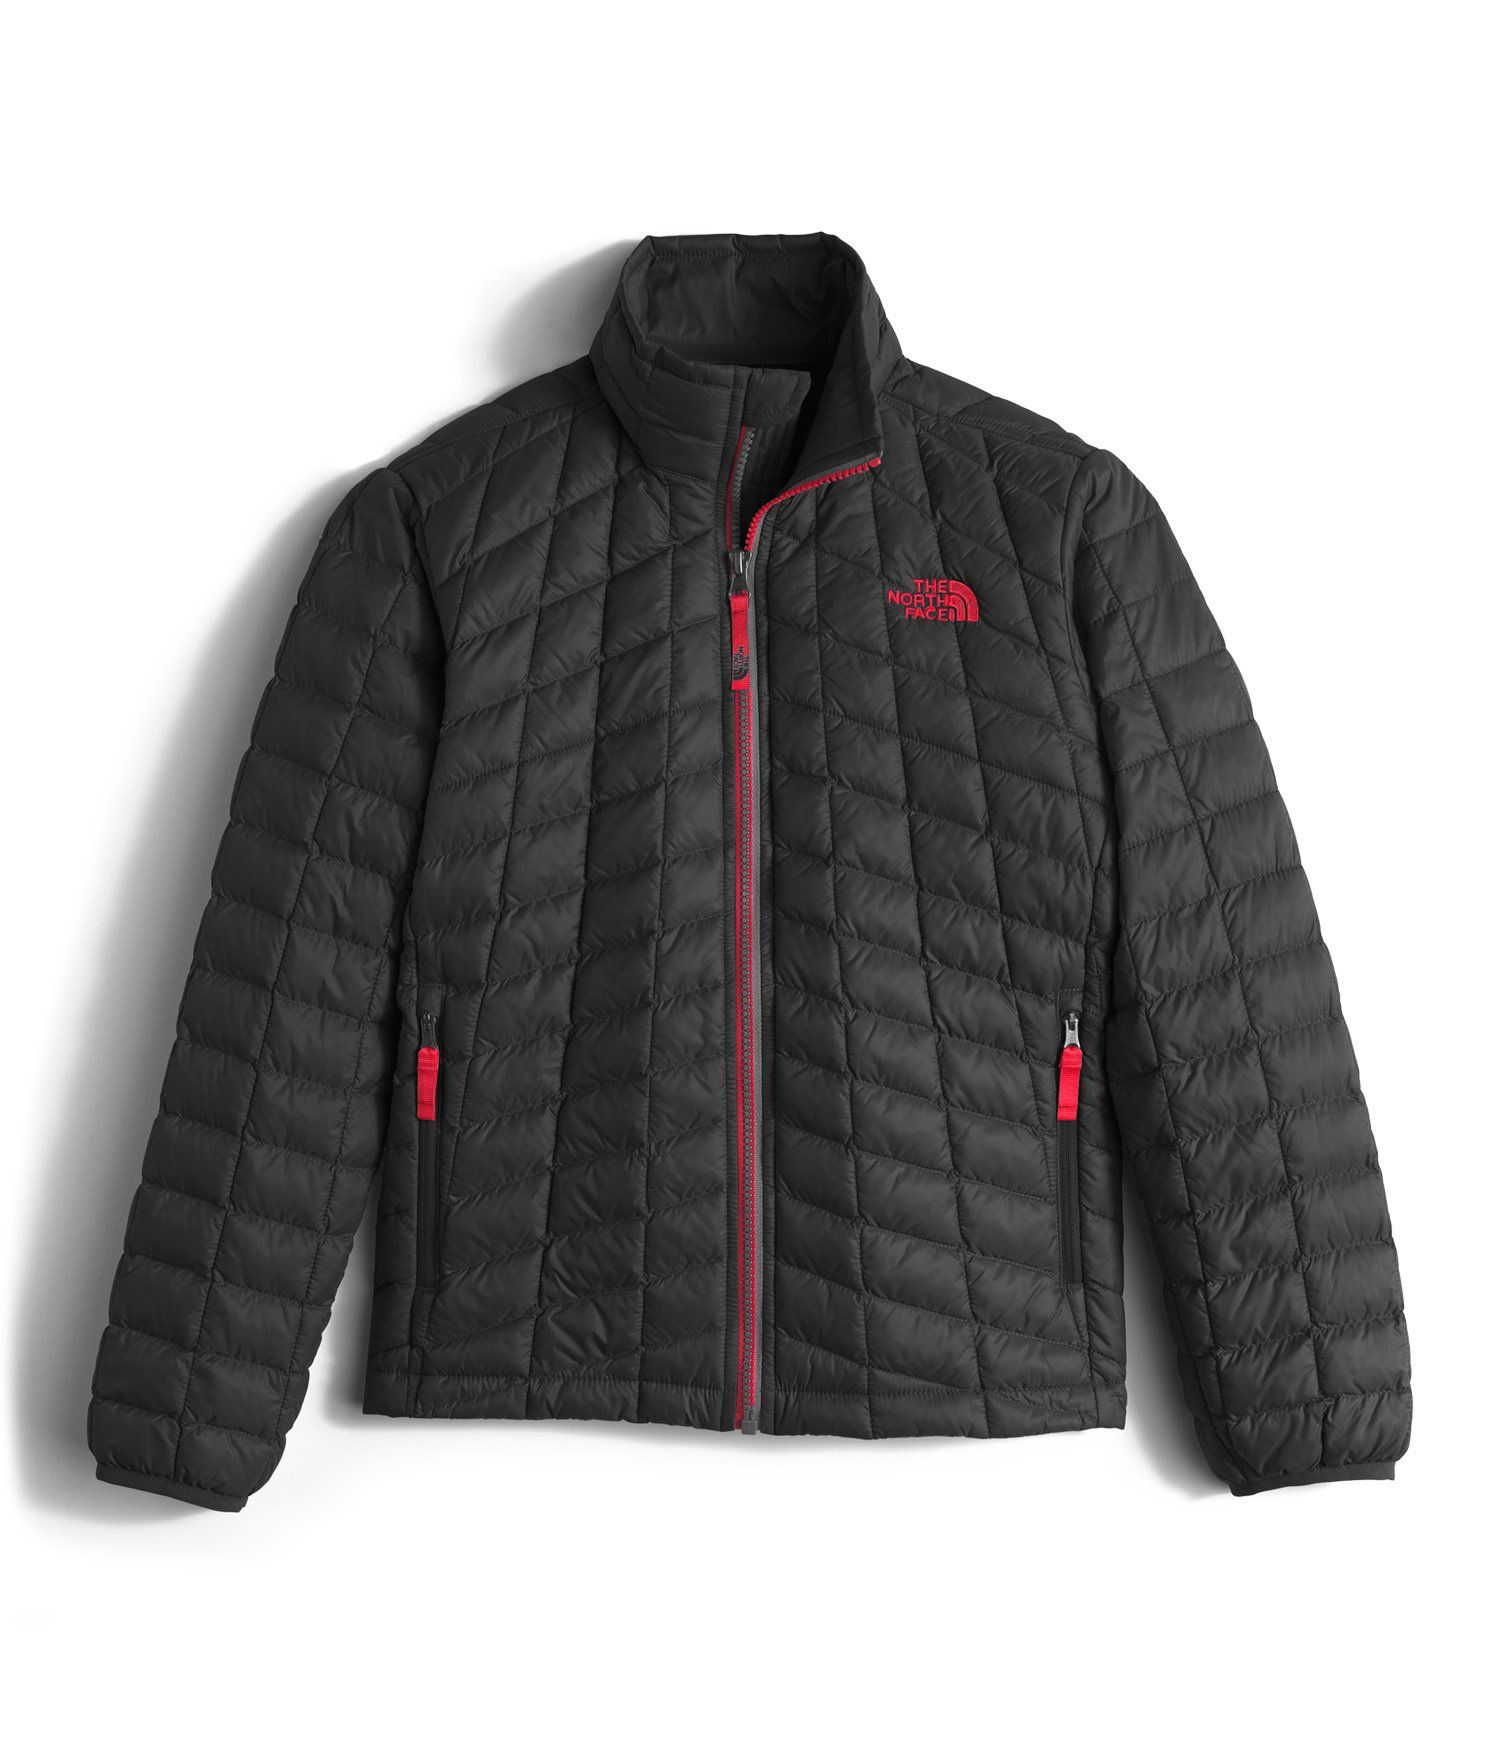 9f26e0225d The North Face Thermoball Full Zip Jacket Boys  TNF Black TNF Red Small.  Synthetic-insulated jacket remains warm in wet